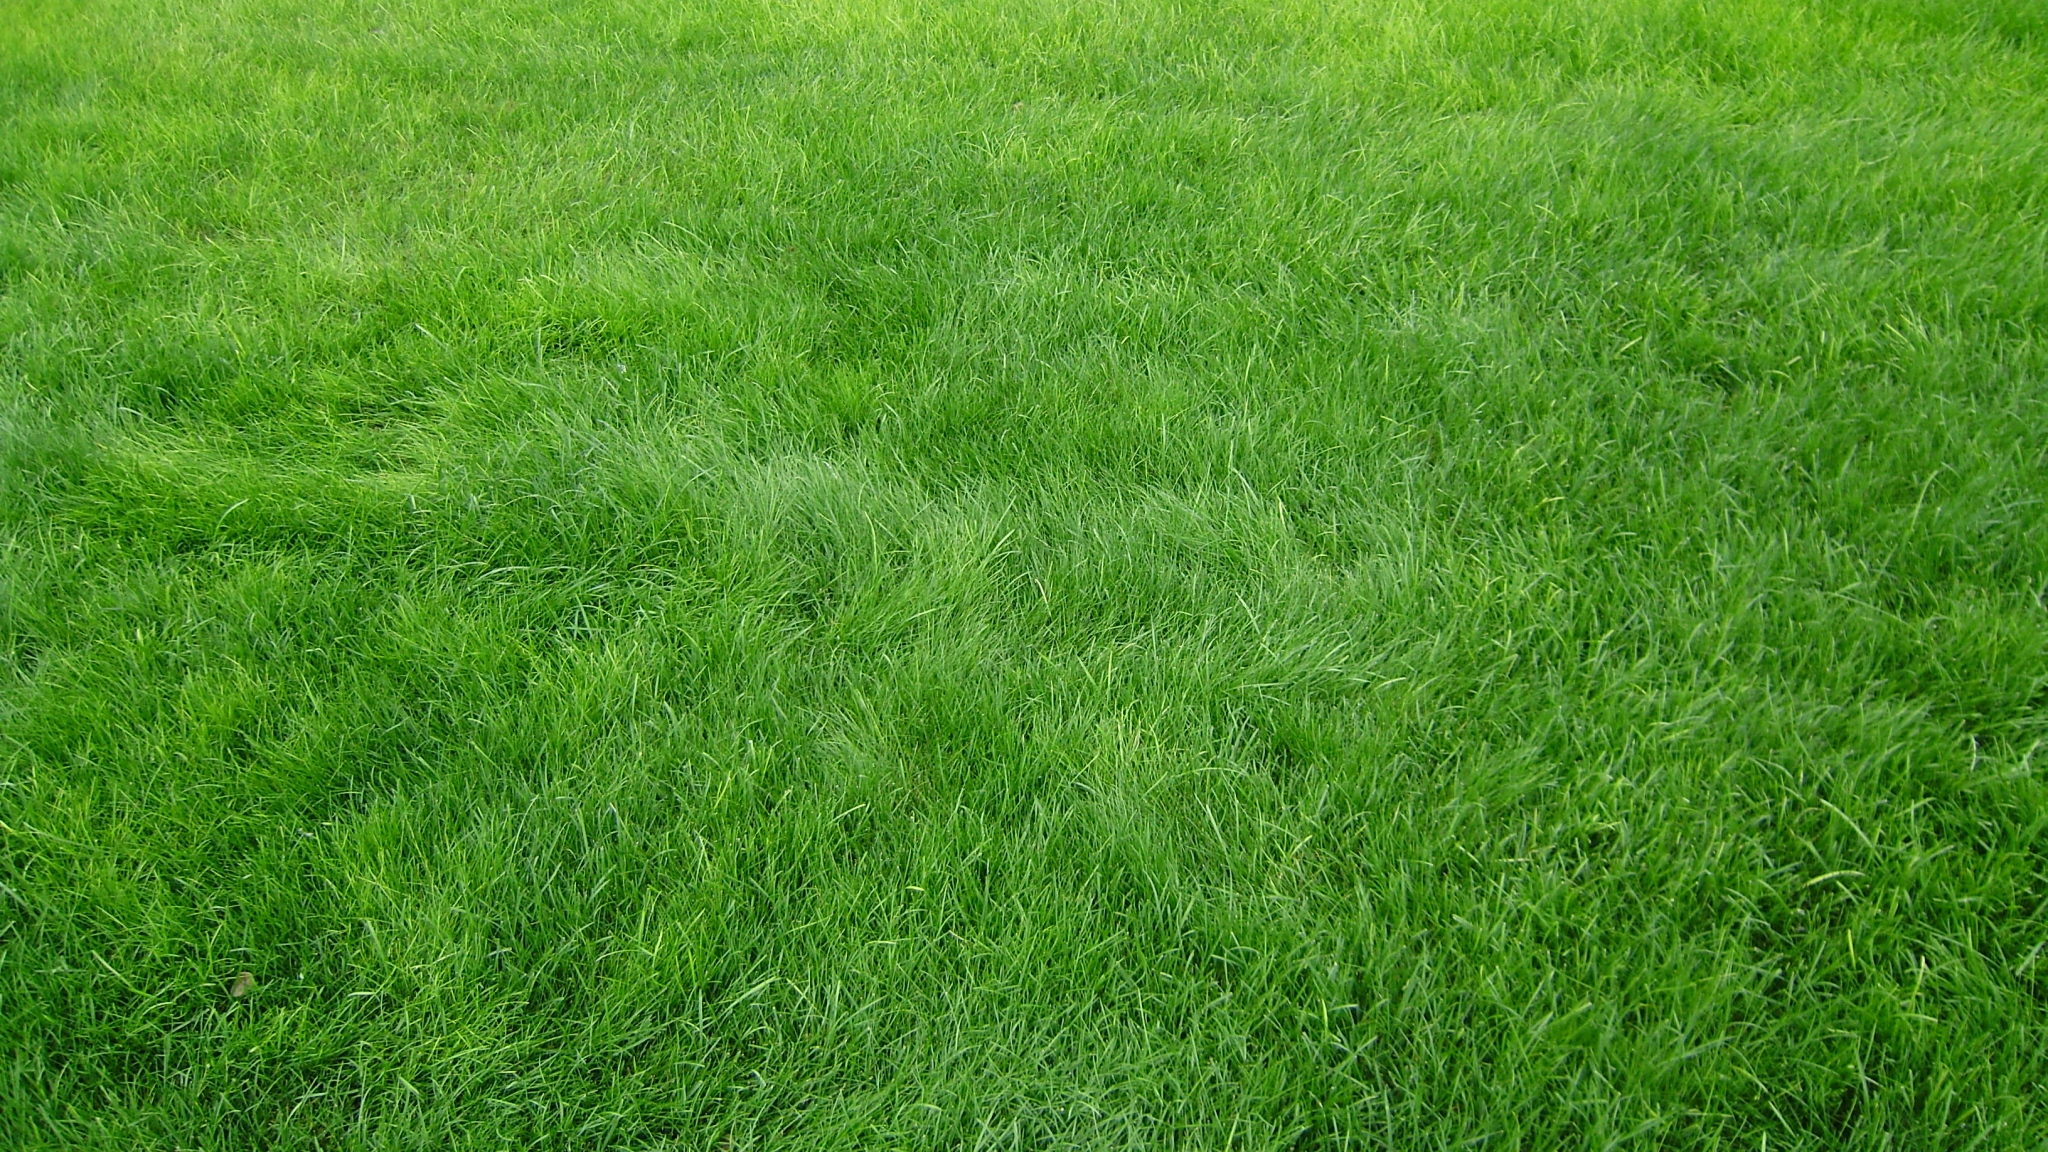 HD Grass Background